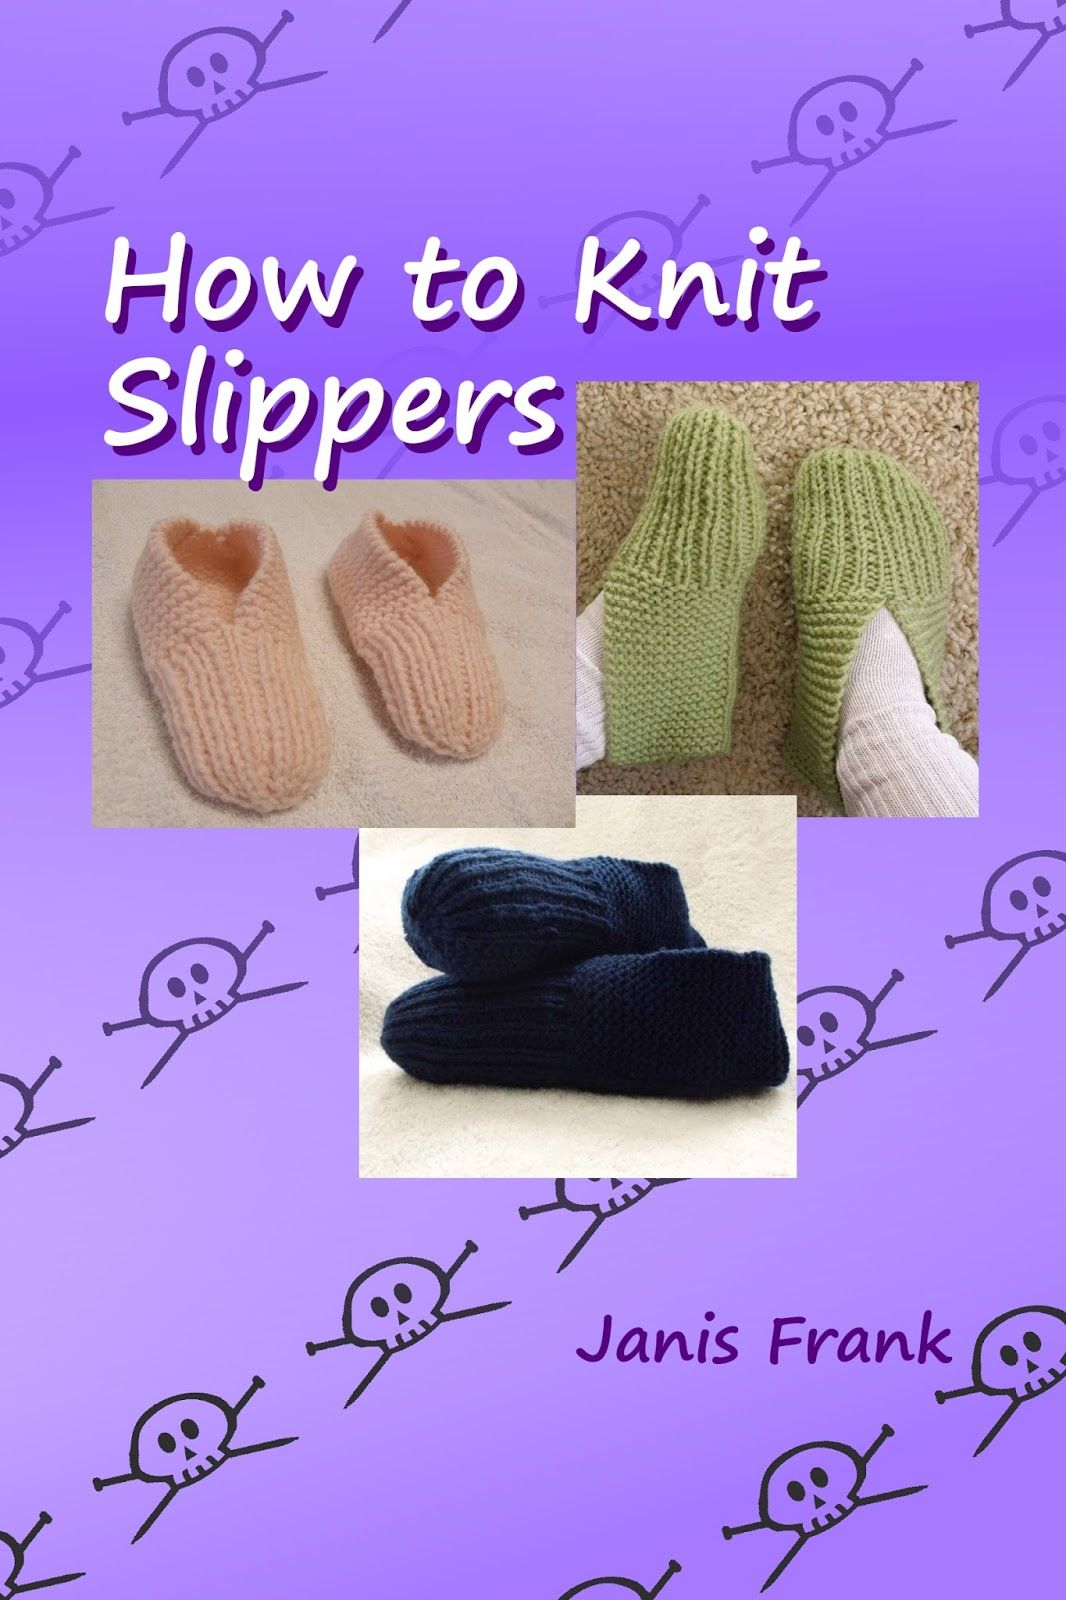 Download your free version of these adult and child sized knitted download your free version of these adult and child sized knitted slipper patterns from any one bankloansurffo Choice Image